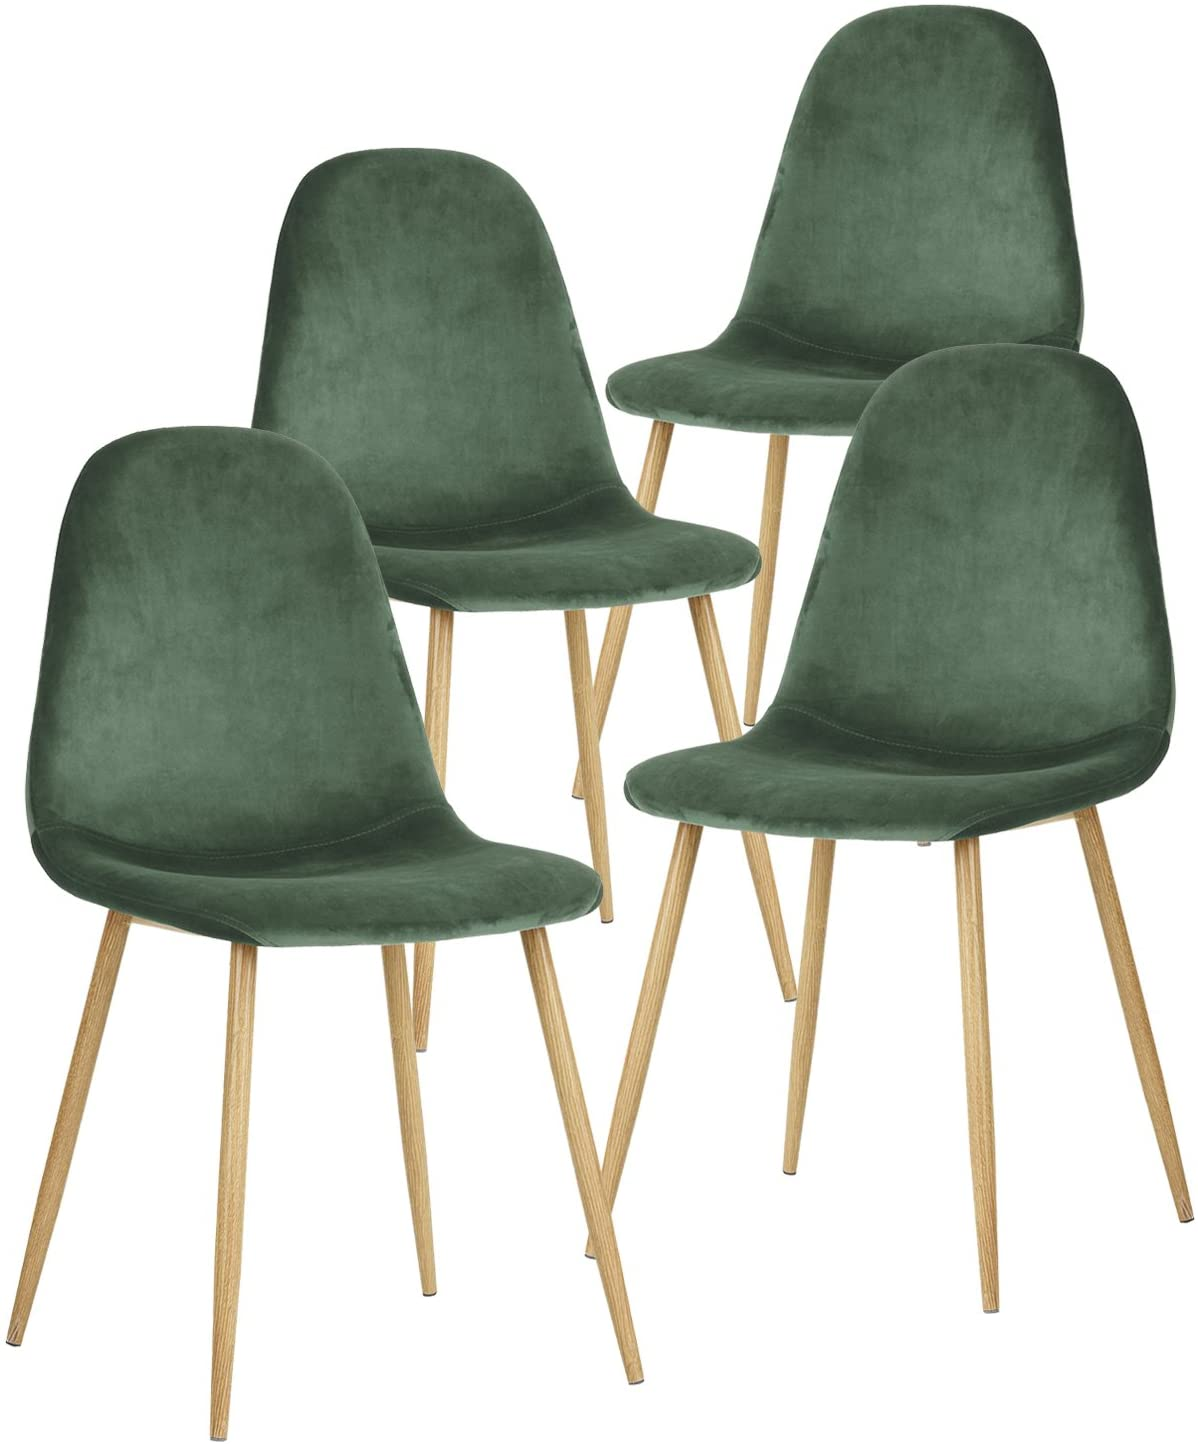 green wood dining chairs